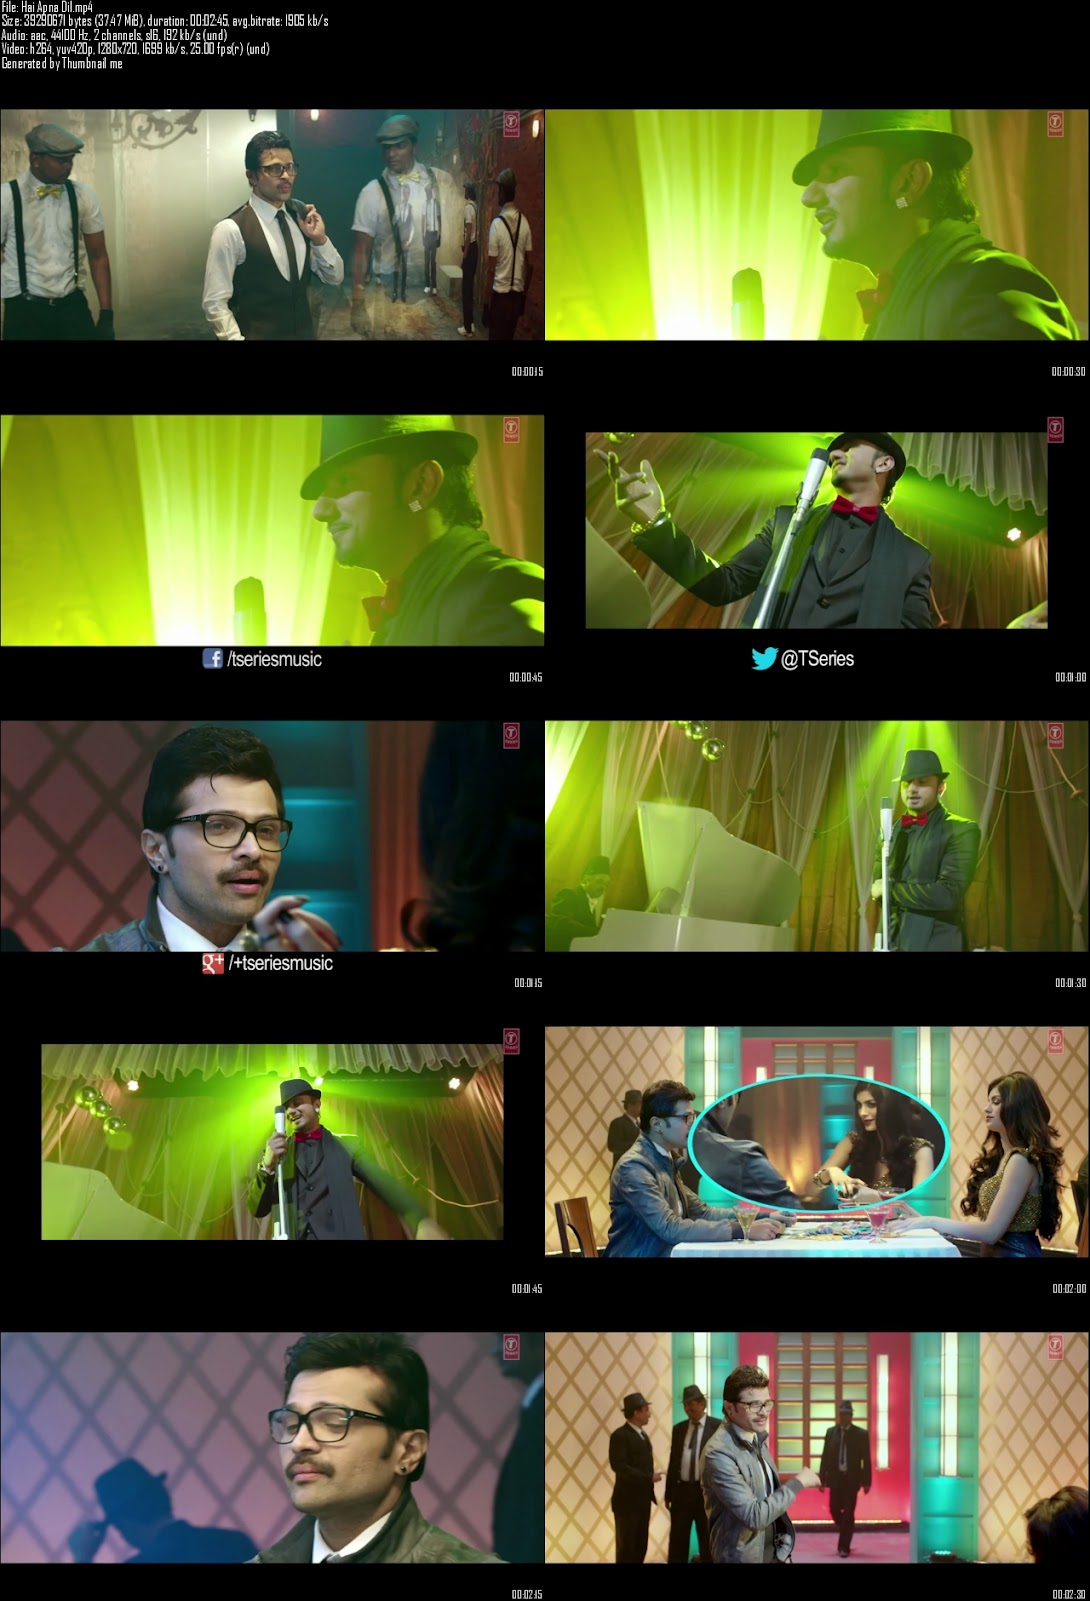 Mediafire Resumable Download Link For Video Song Hai Apna Dil - The Xpose (2014)